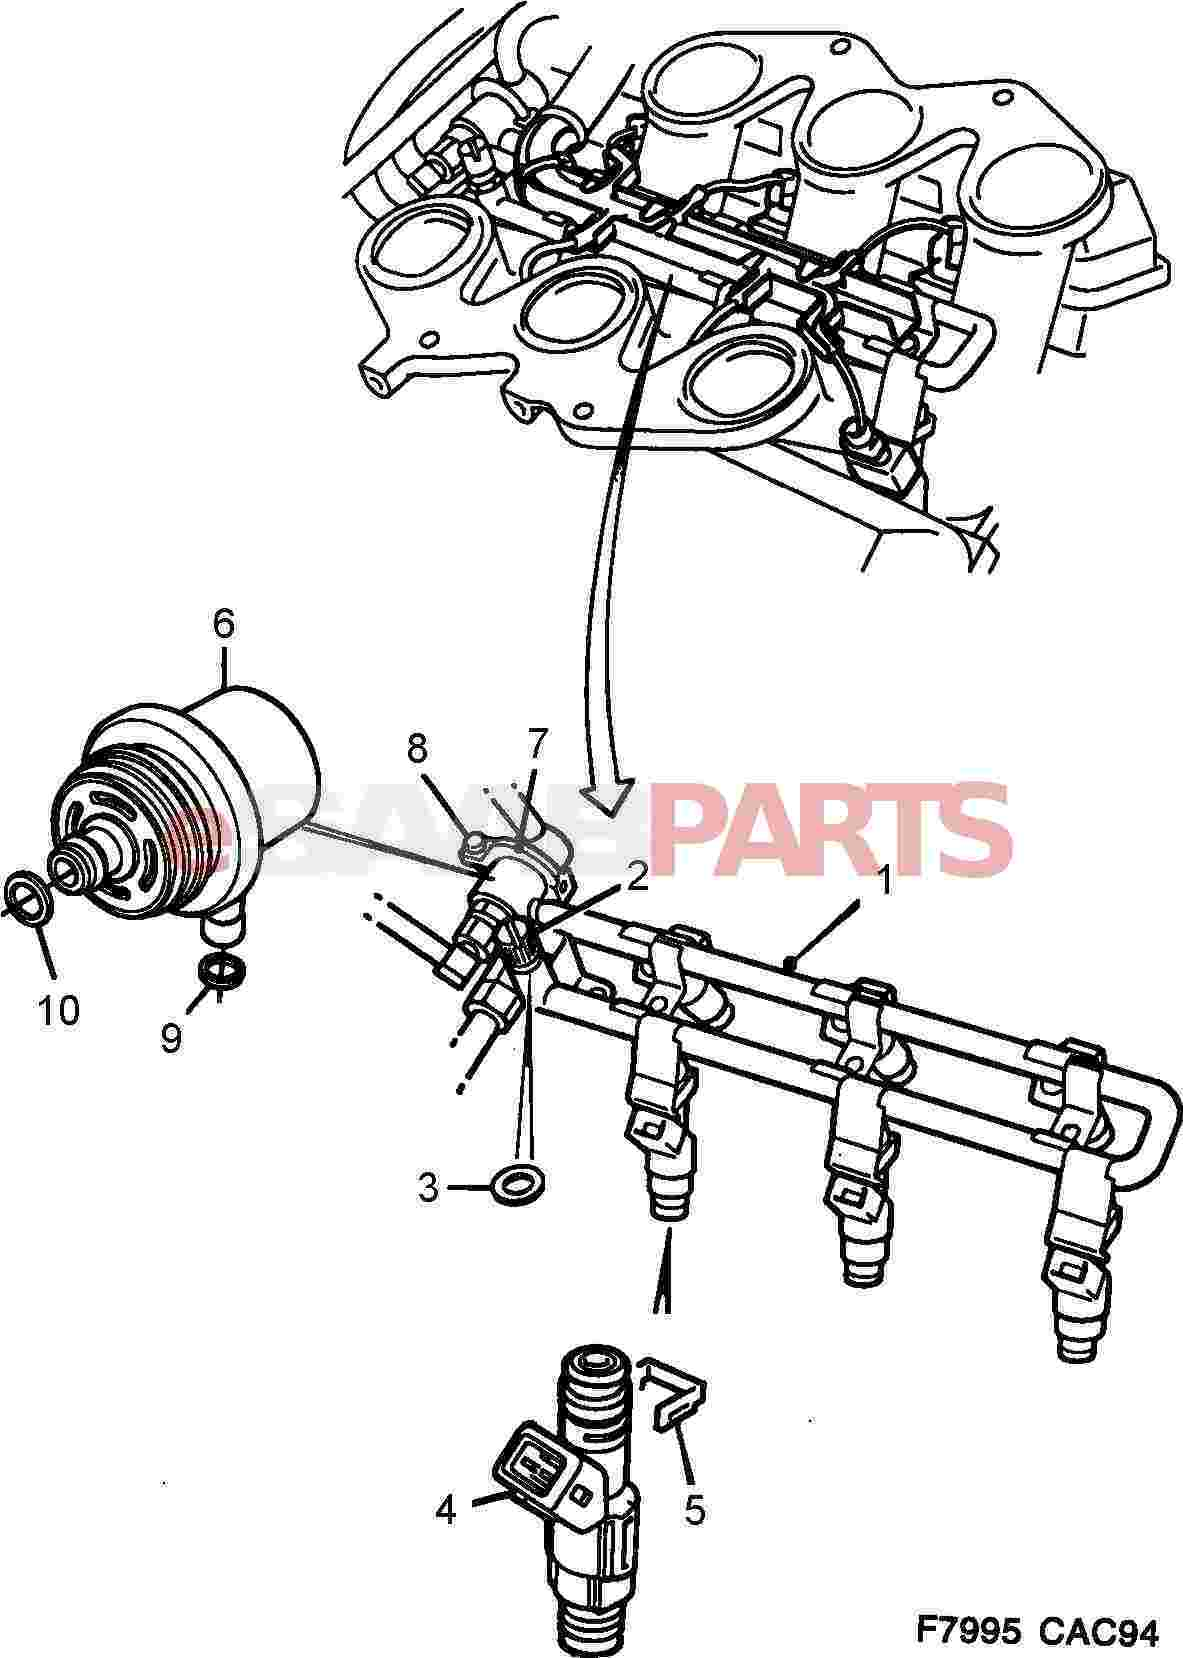 1999 Saab 9 3 Amplifier Wiring Explore Diagram On The Net 2001 5 Engine Auto Fuse Box Turbo